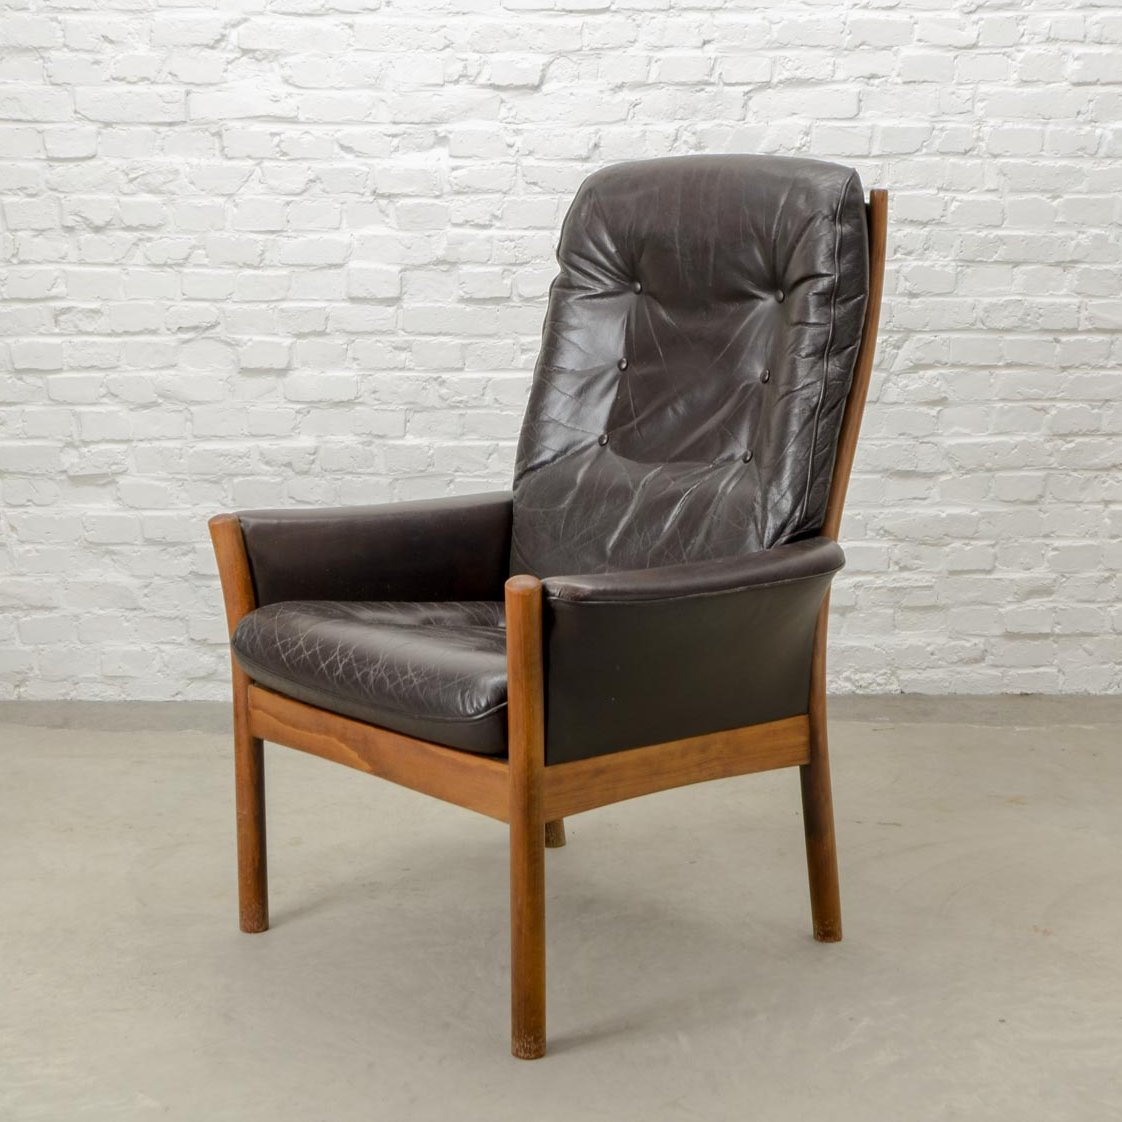 Möbel Scandinavian Design Scandinavian Design Brown Leather Lounge Chair By G Möbel Sweden 1960s